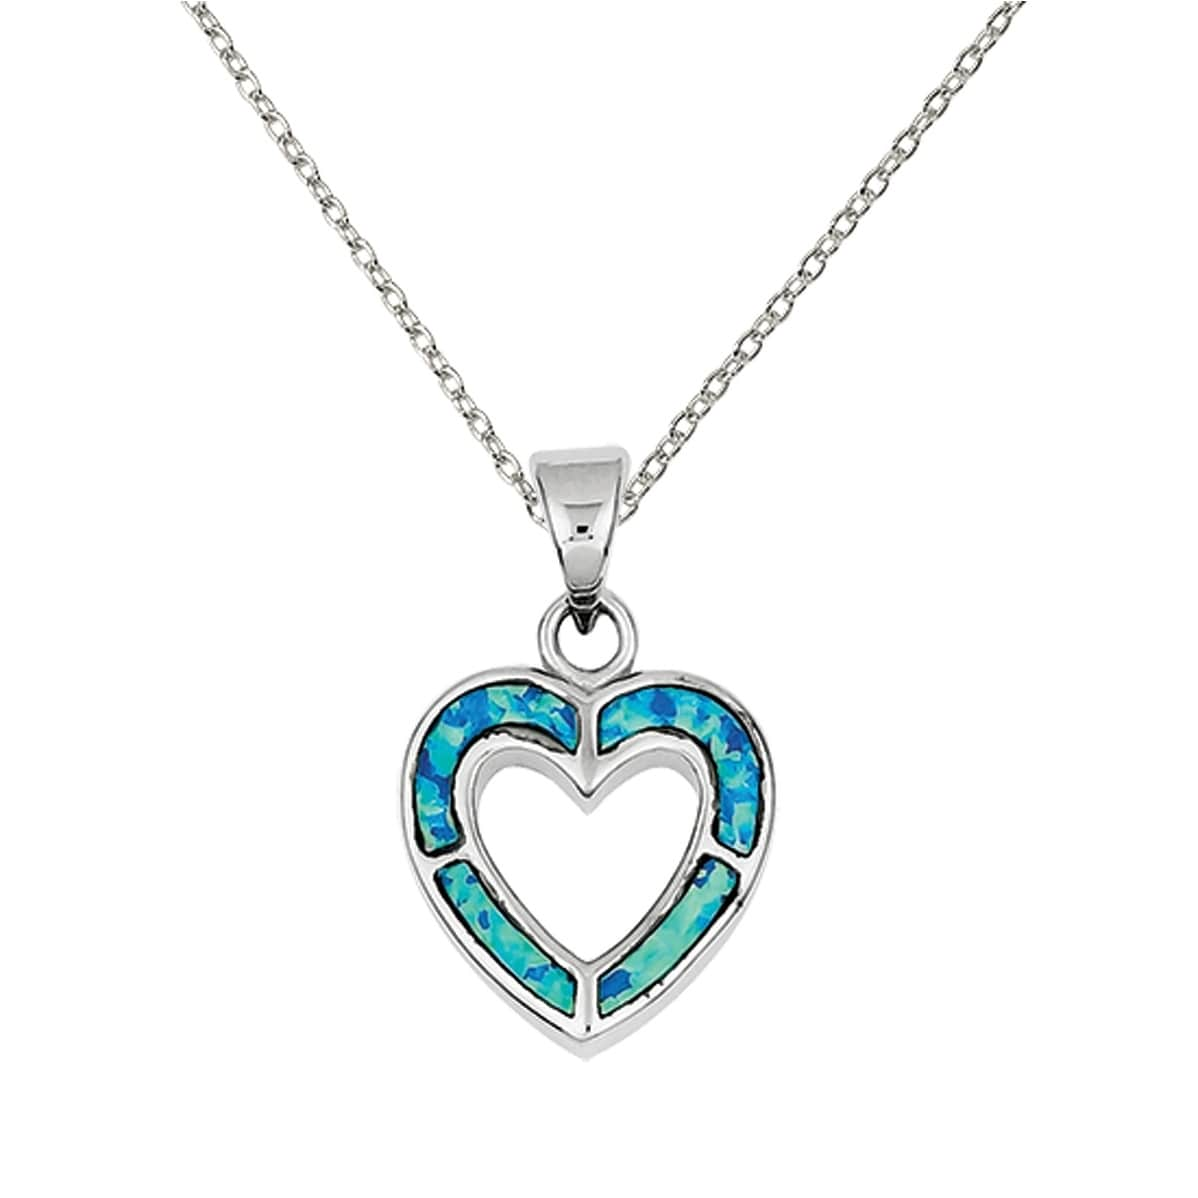 Trillion Jewels Love Mom in Heart Diamond 0.08 ct Pendant with Chain in 925 Sterling Silver